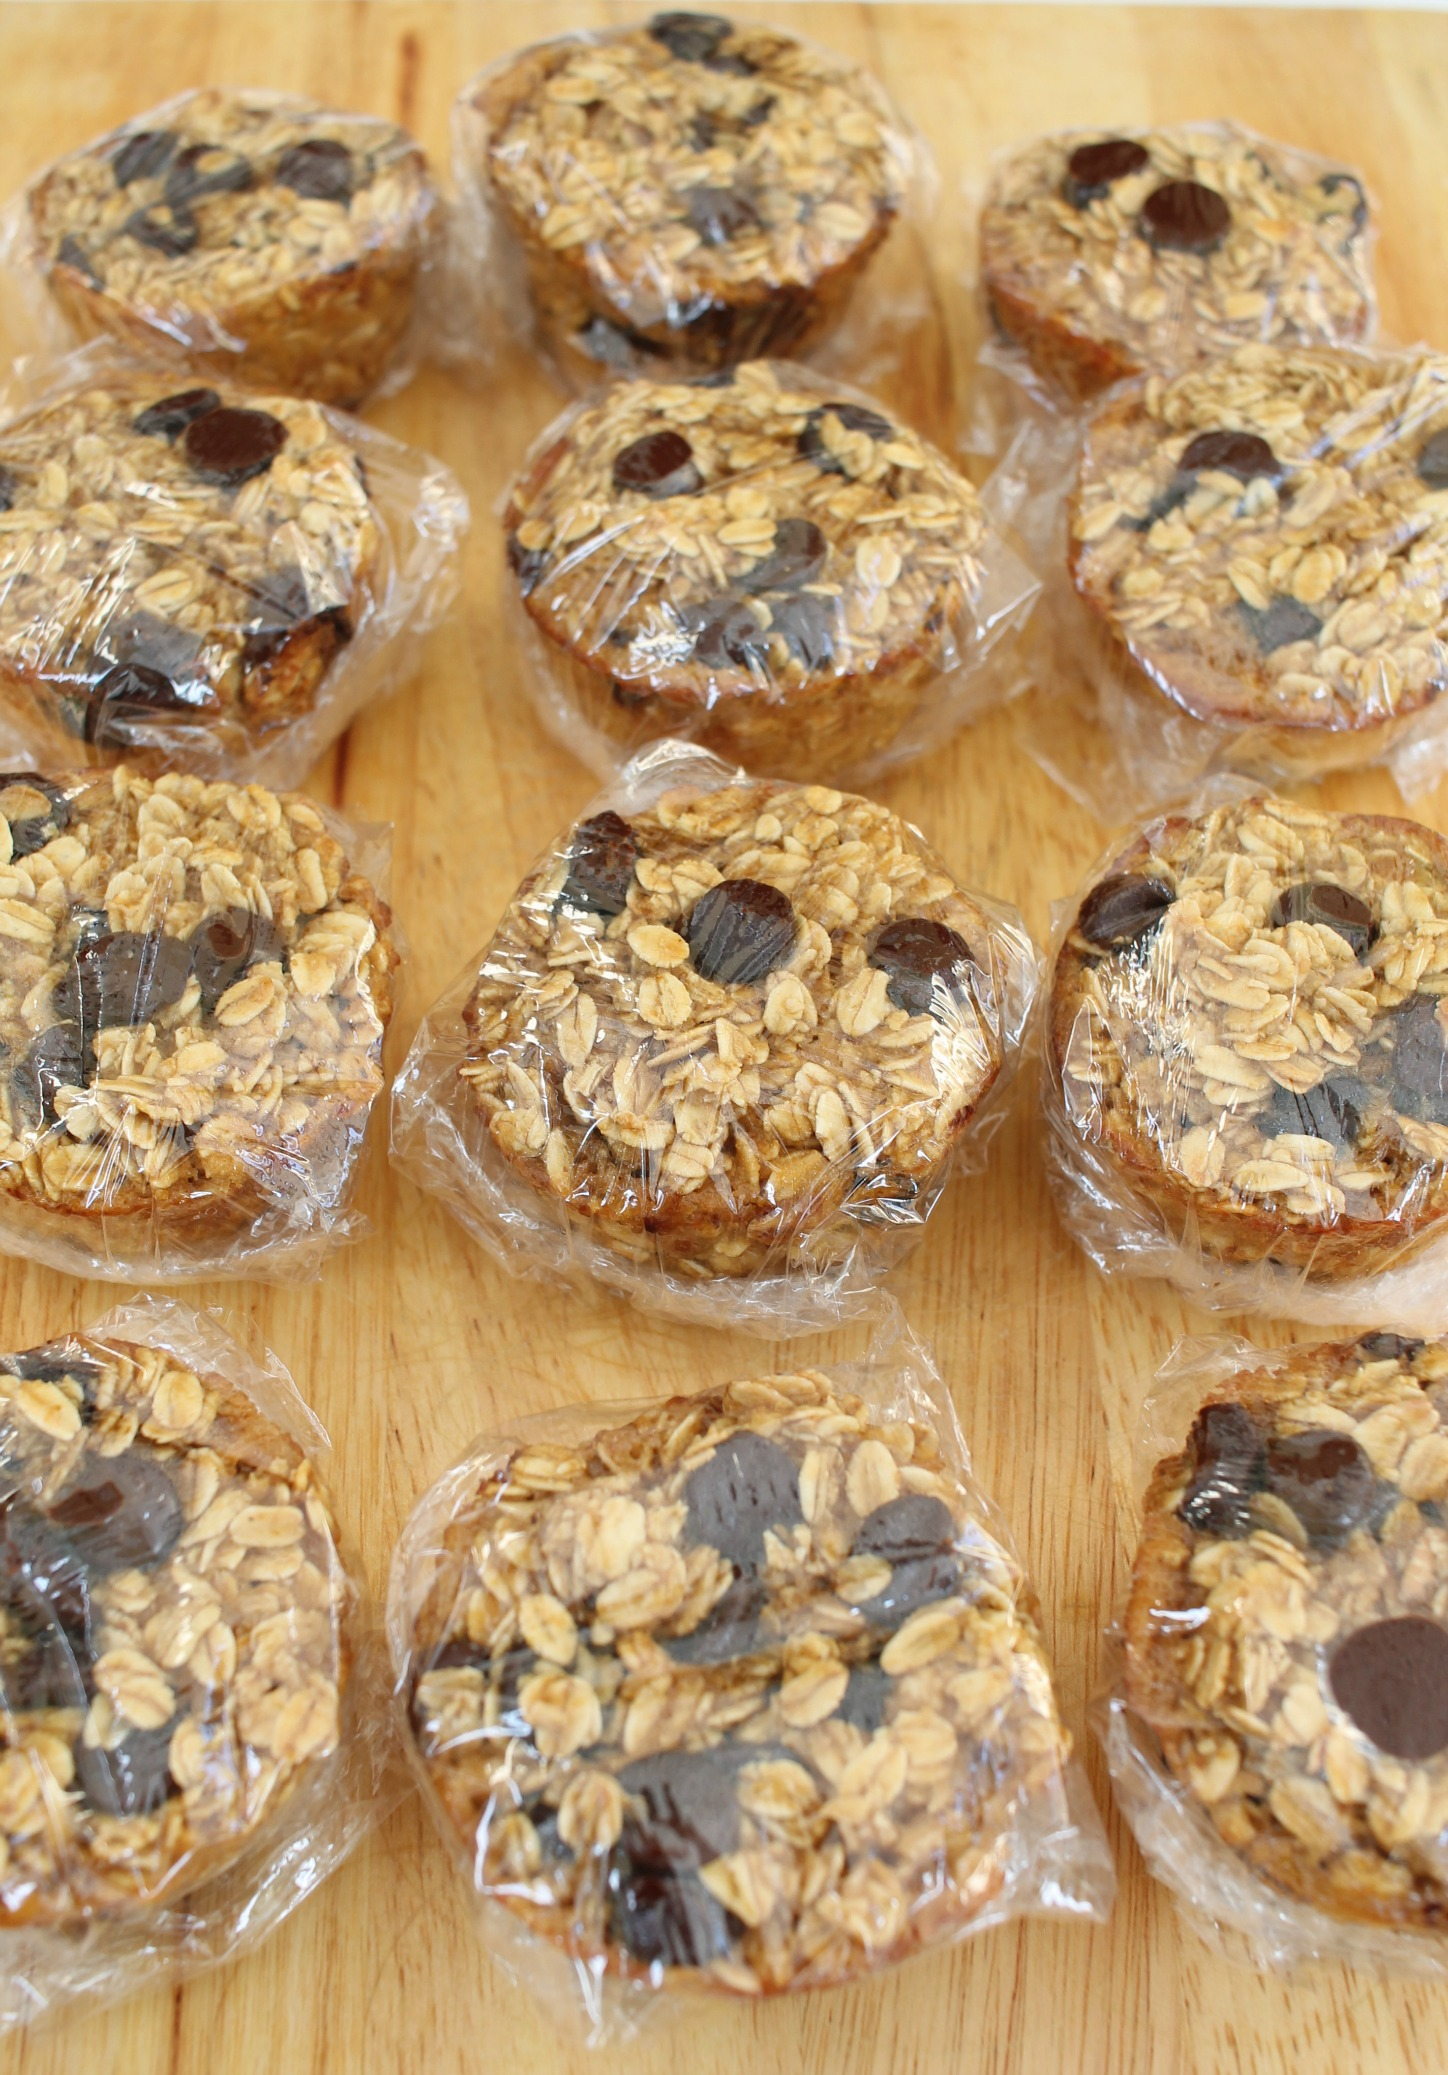 peanut butter chocolate chip baked oatmeal muffins that are individually wrapped in plastic wrap